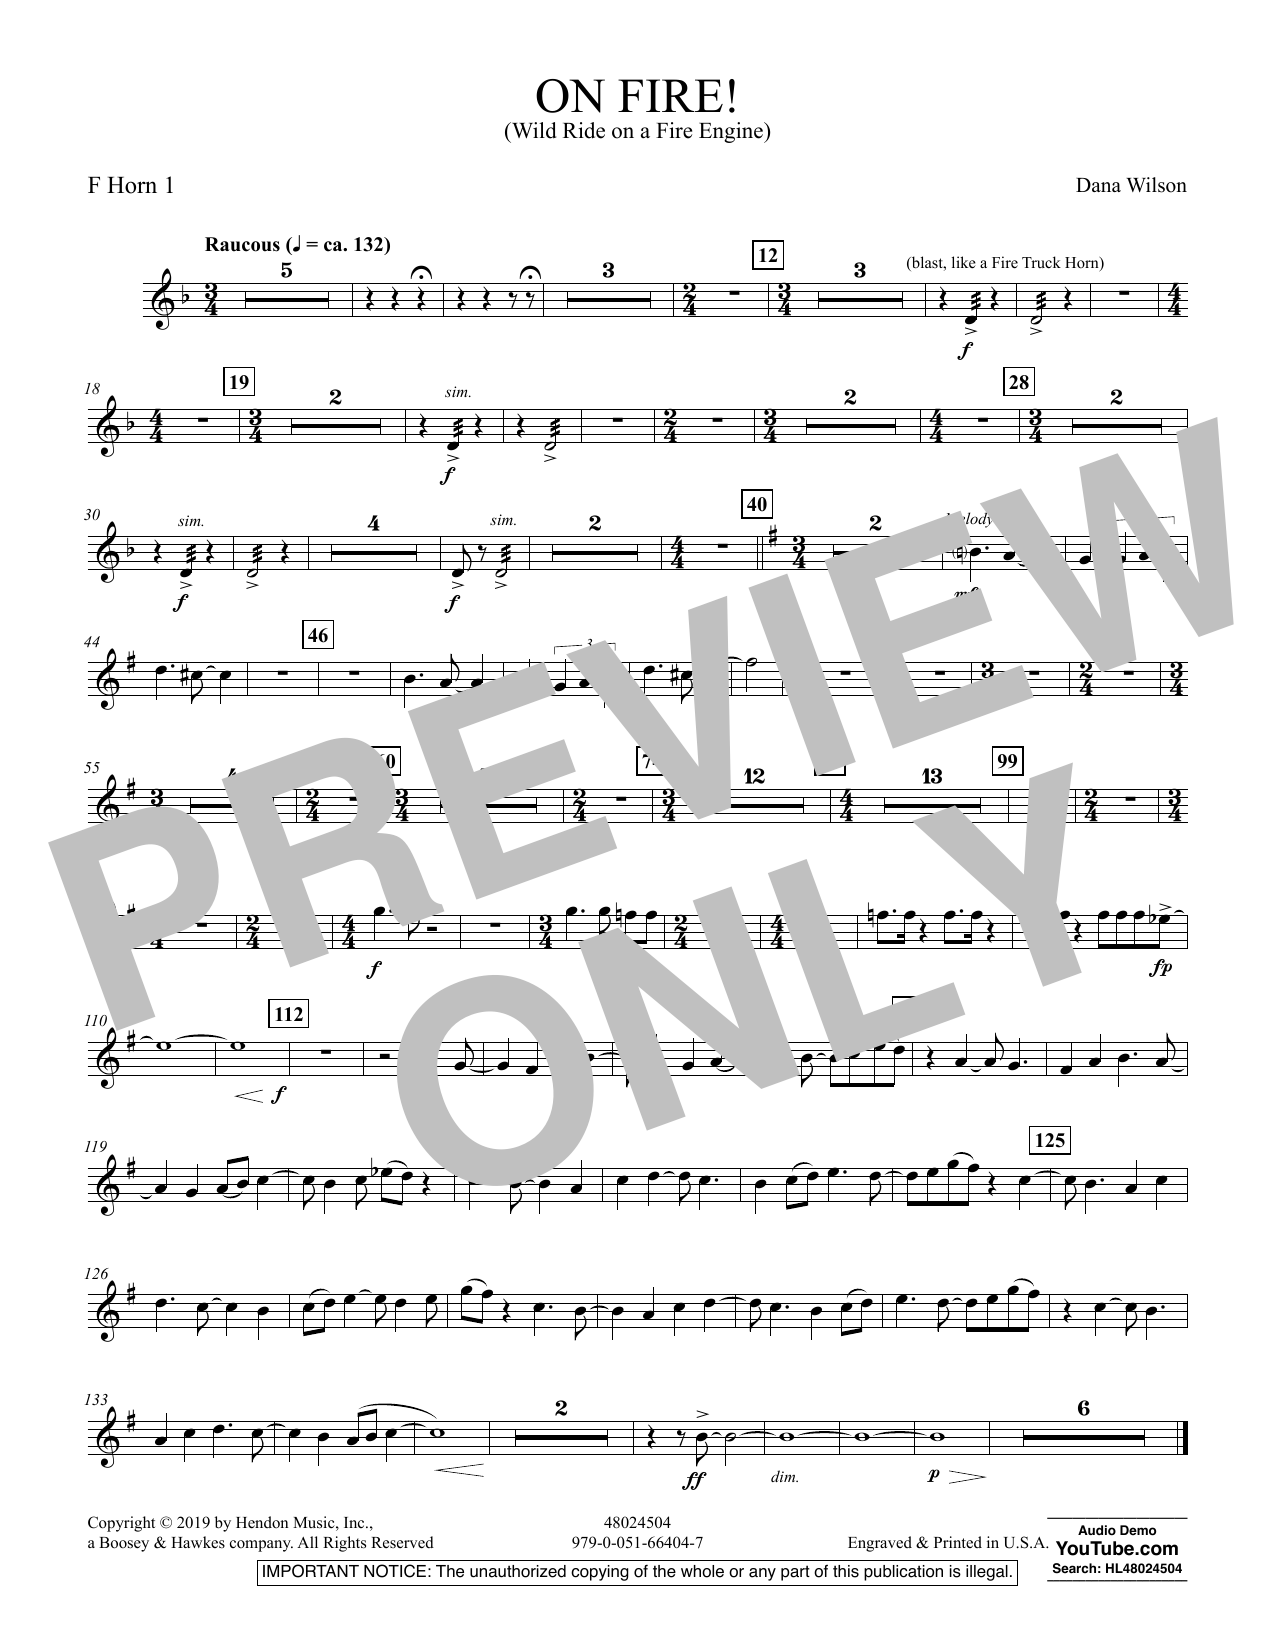 On Fire! (Wild Ride on a Fire Engine) - F Horn 1 (Concert Band)